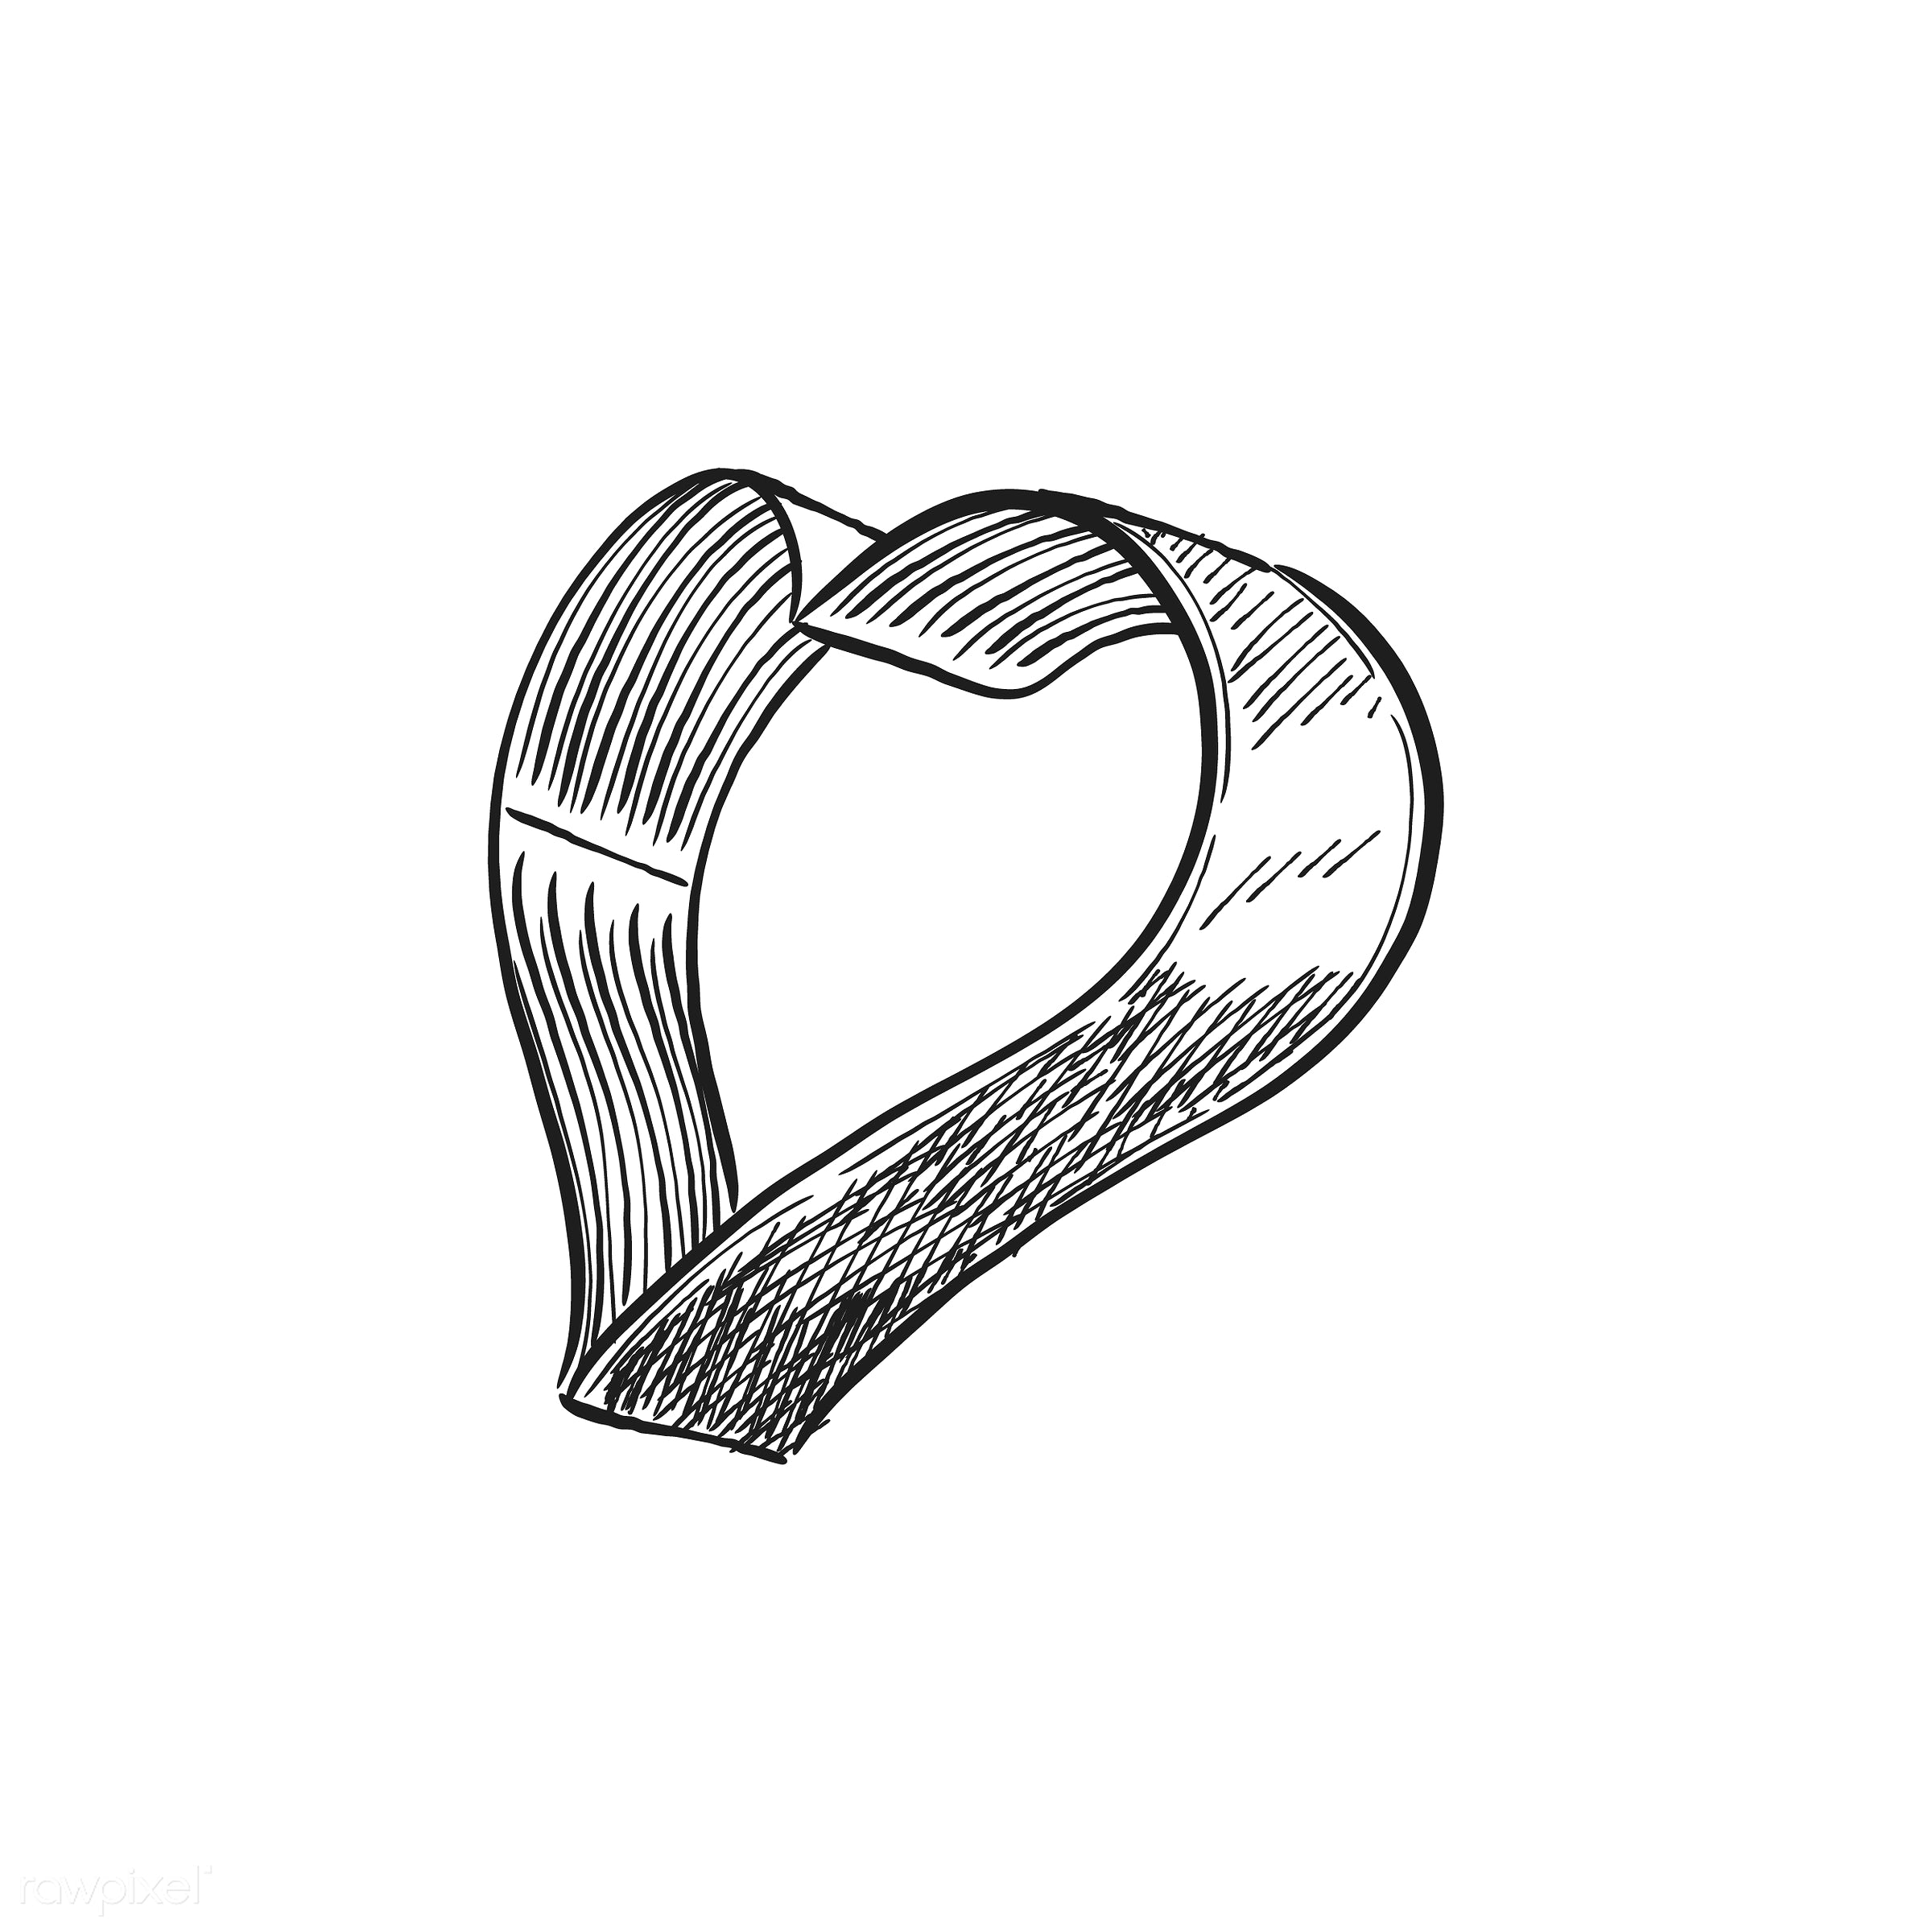 Vintage illustration of a heart shaped cookie cutter - antique, bake, bakery, black, design, drawing, equipment, graphic,...